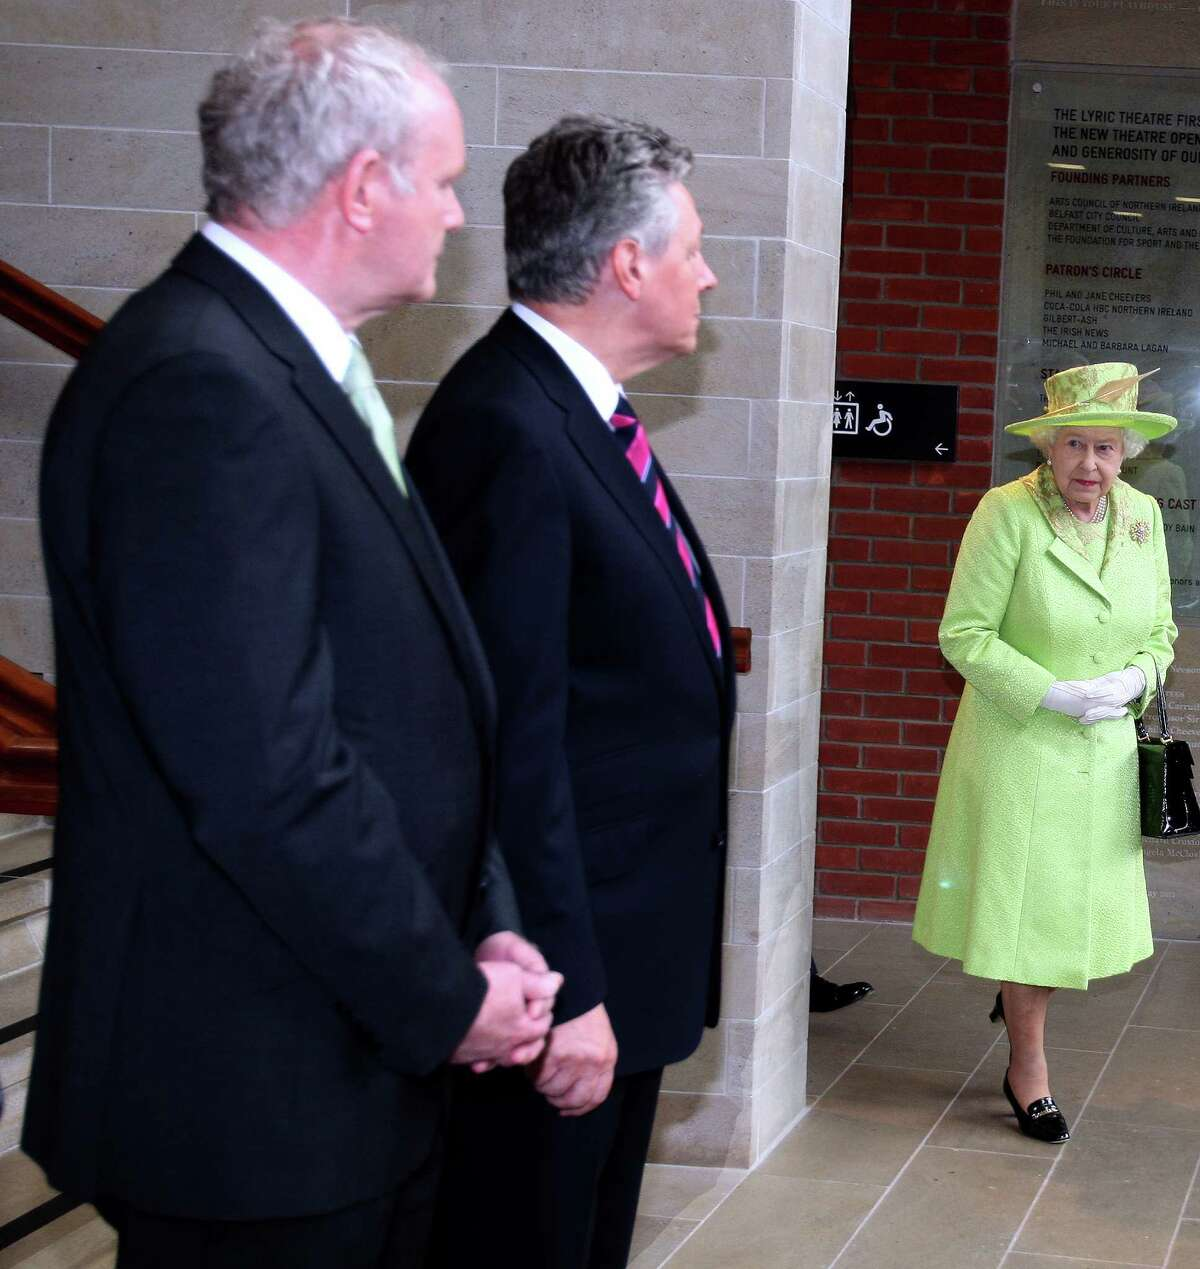 BELFAST, NORTHERN IRELAND - JUNE 27: Queen Elizabeth II arrives to meet with Deputy First Minister of Northern Ireland Martin McGuinness (L) and First Minister Peter Robinson (C) at the Lyric Theatre on June 27, 2012 in Belfast, Northern Ireland. During the Queen's two day visit to Northern Ireland she held a hugely significant meeting with former IRA commander and deputy First Minister of Northern Ireland, Martin McGuinness at the Lyric Theatre today. The Queen will also visit the newly opened Titanic Museum and the town of Enniskillen.